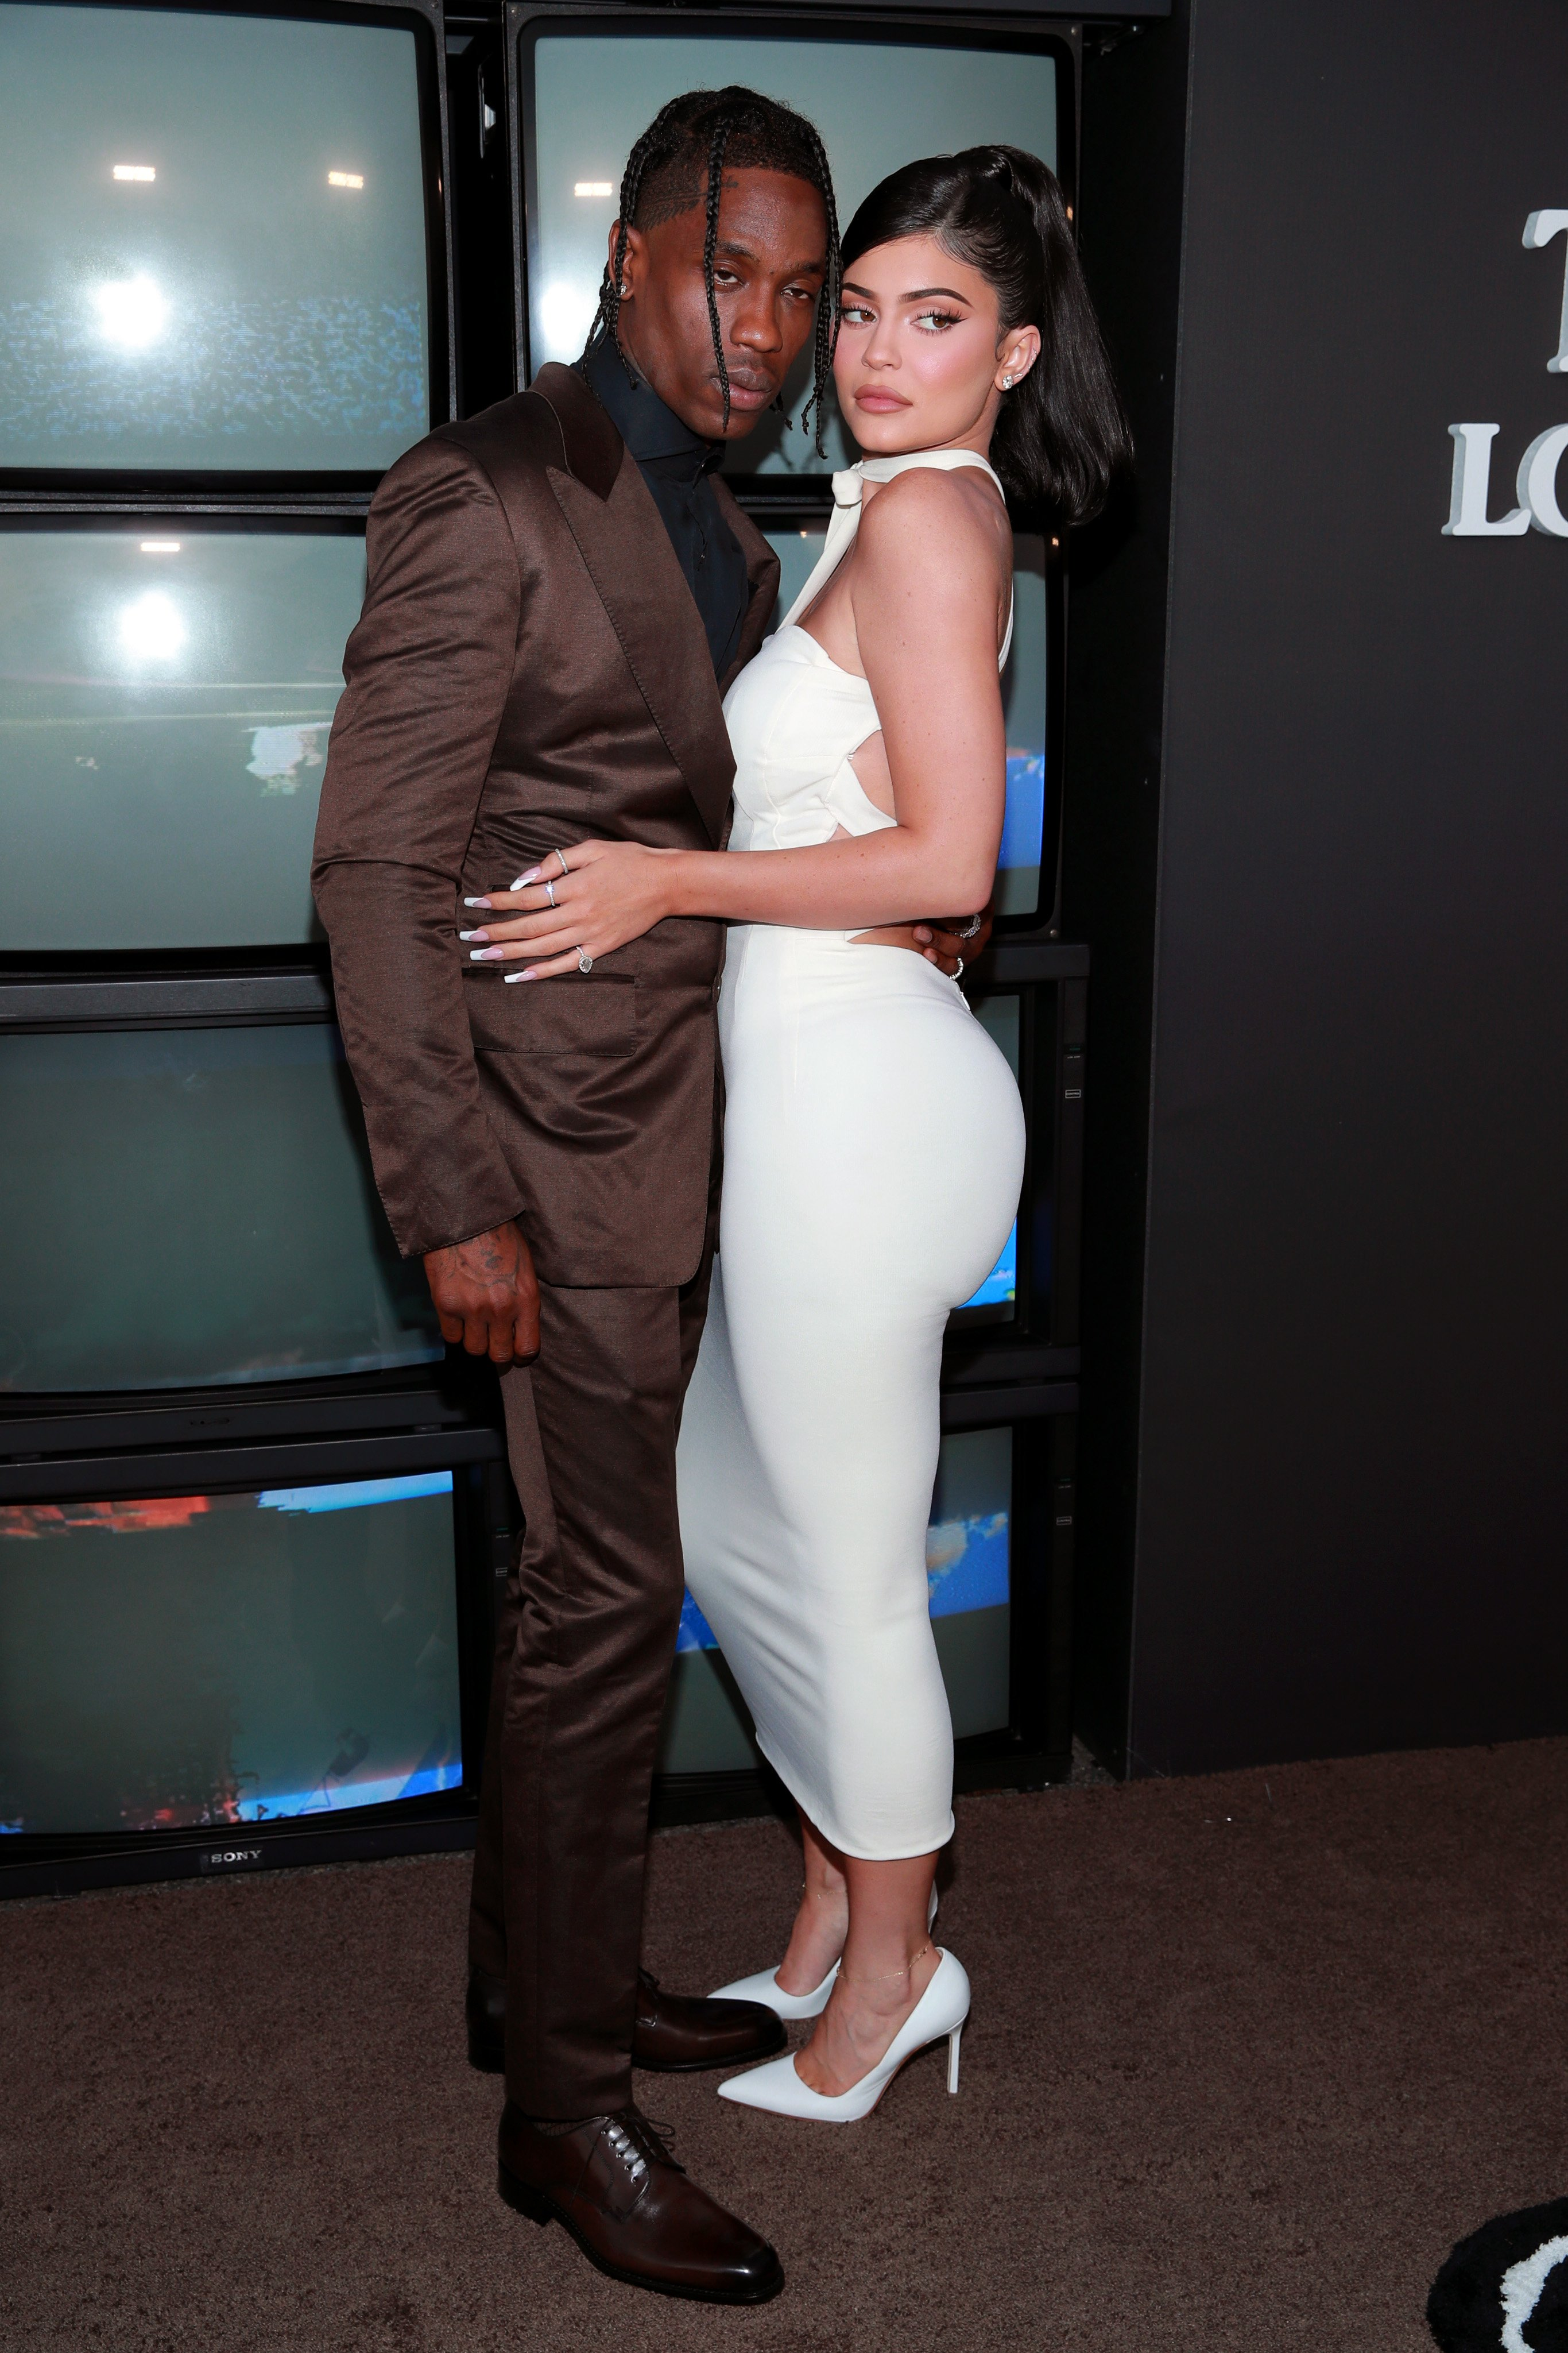 """Kylie Jenner & Travis Scott at the premiere of """"Travis Scott: Look Mom I Can Fly"""" in California on Aug. 27, 2019 